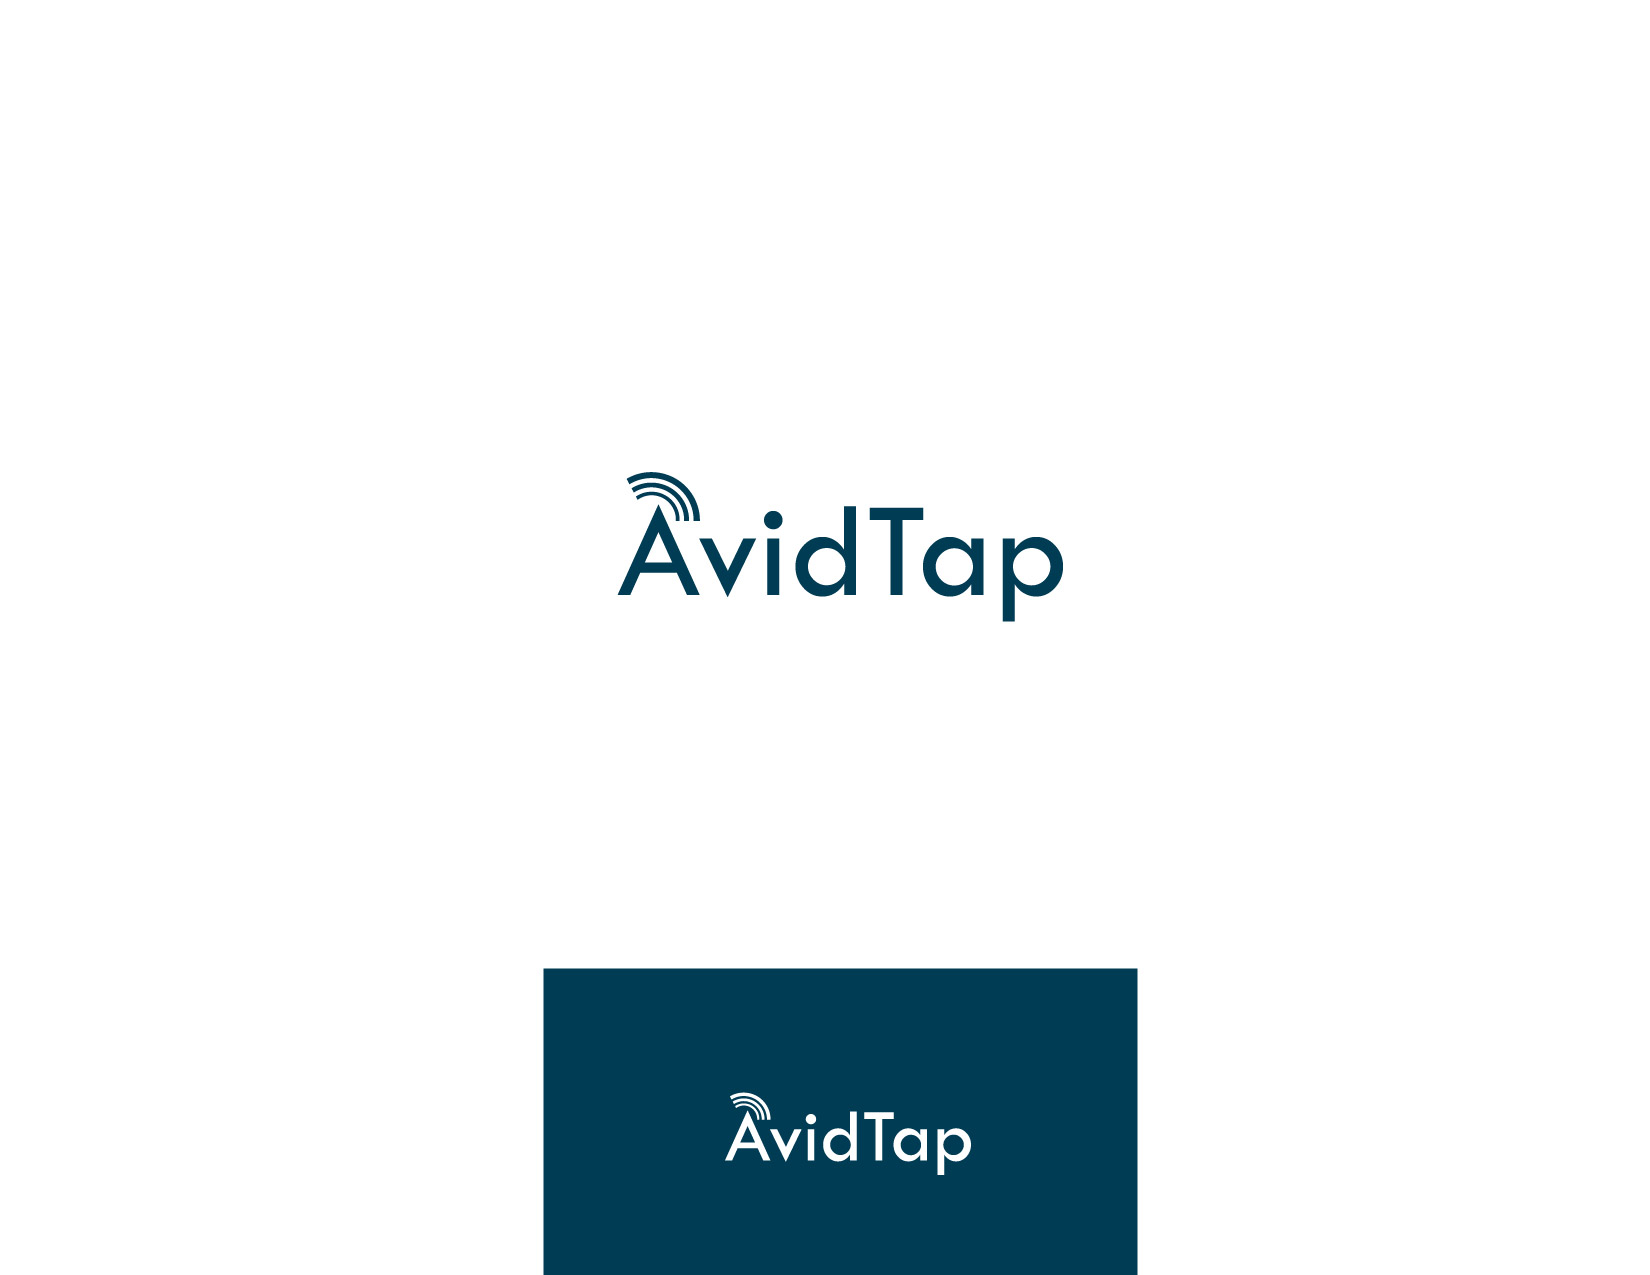 Logo Design by Osi Indra - Entry No. 87 in the Logo Design Contest Imaginative Logo Design for AvidTap.